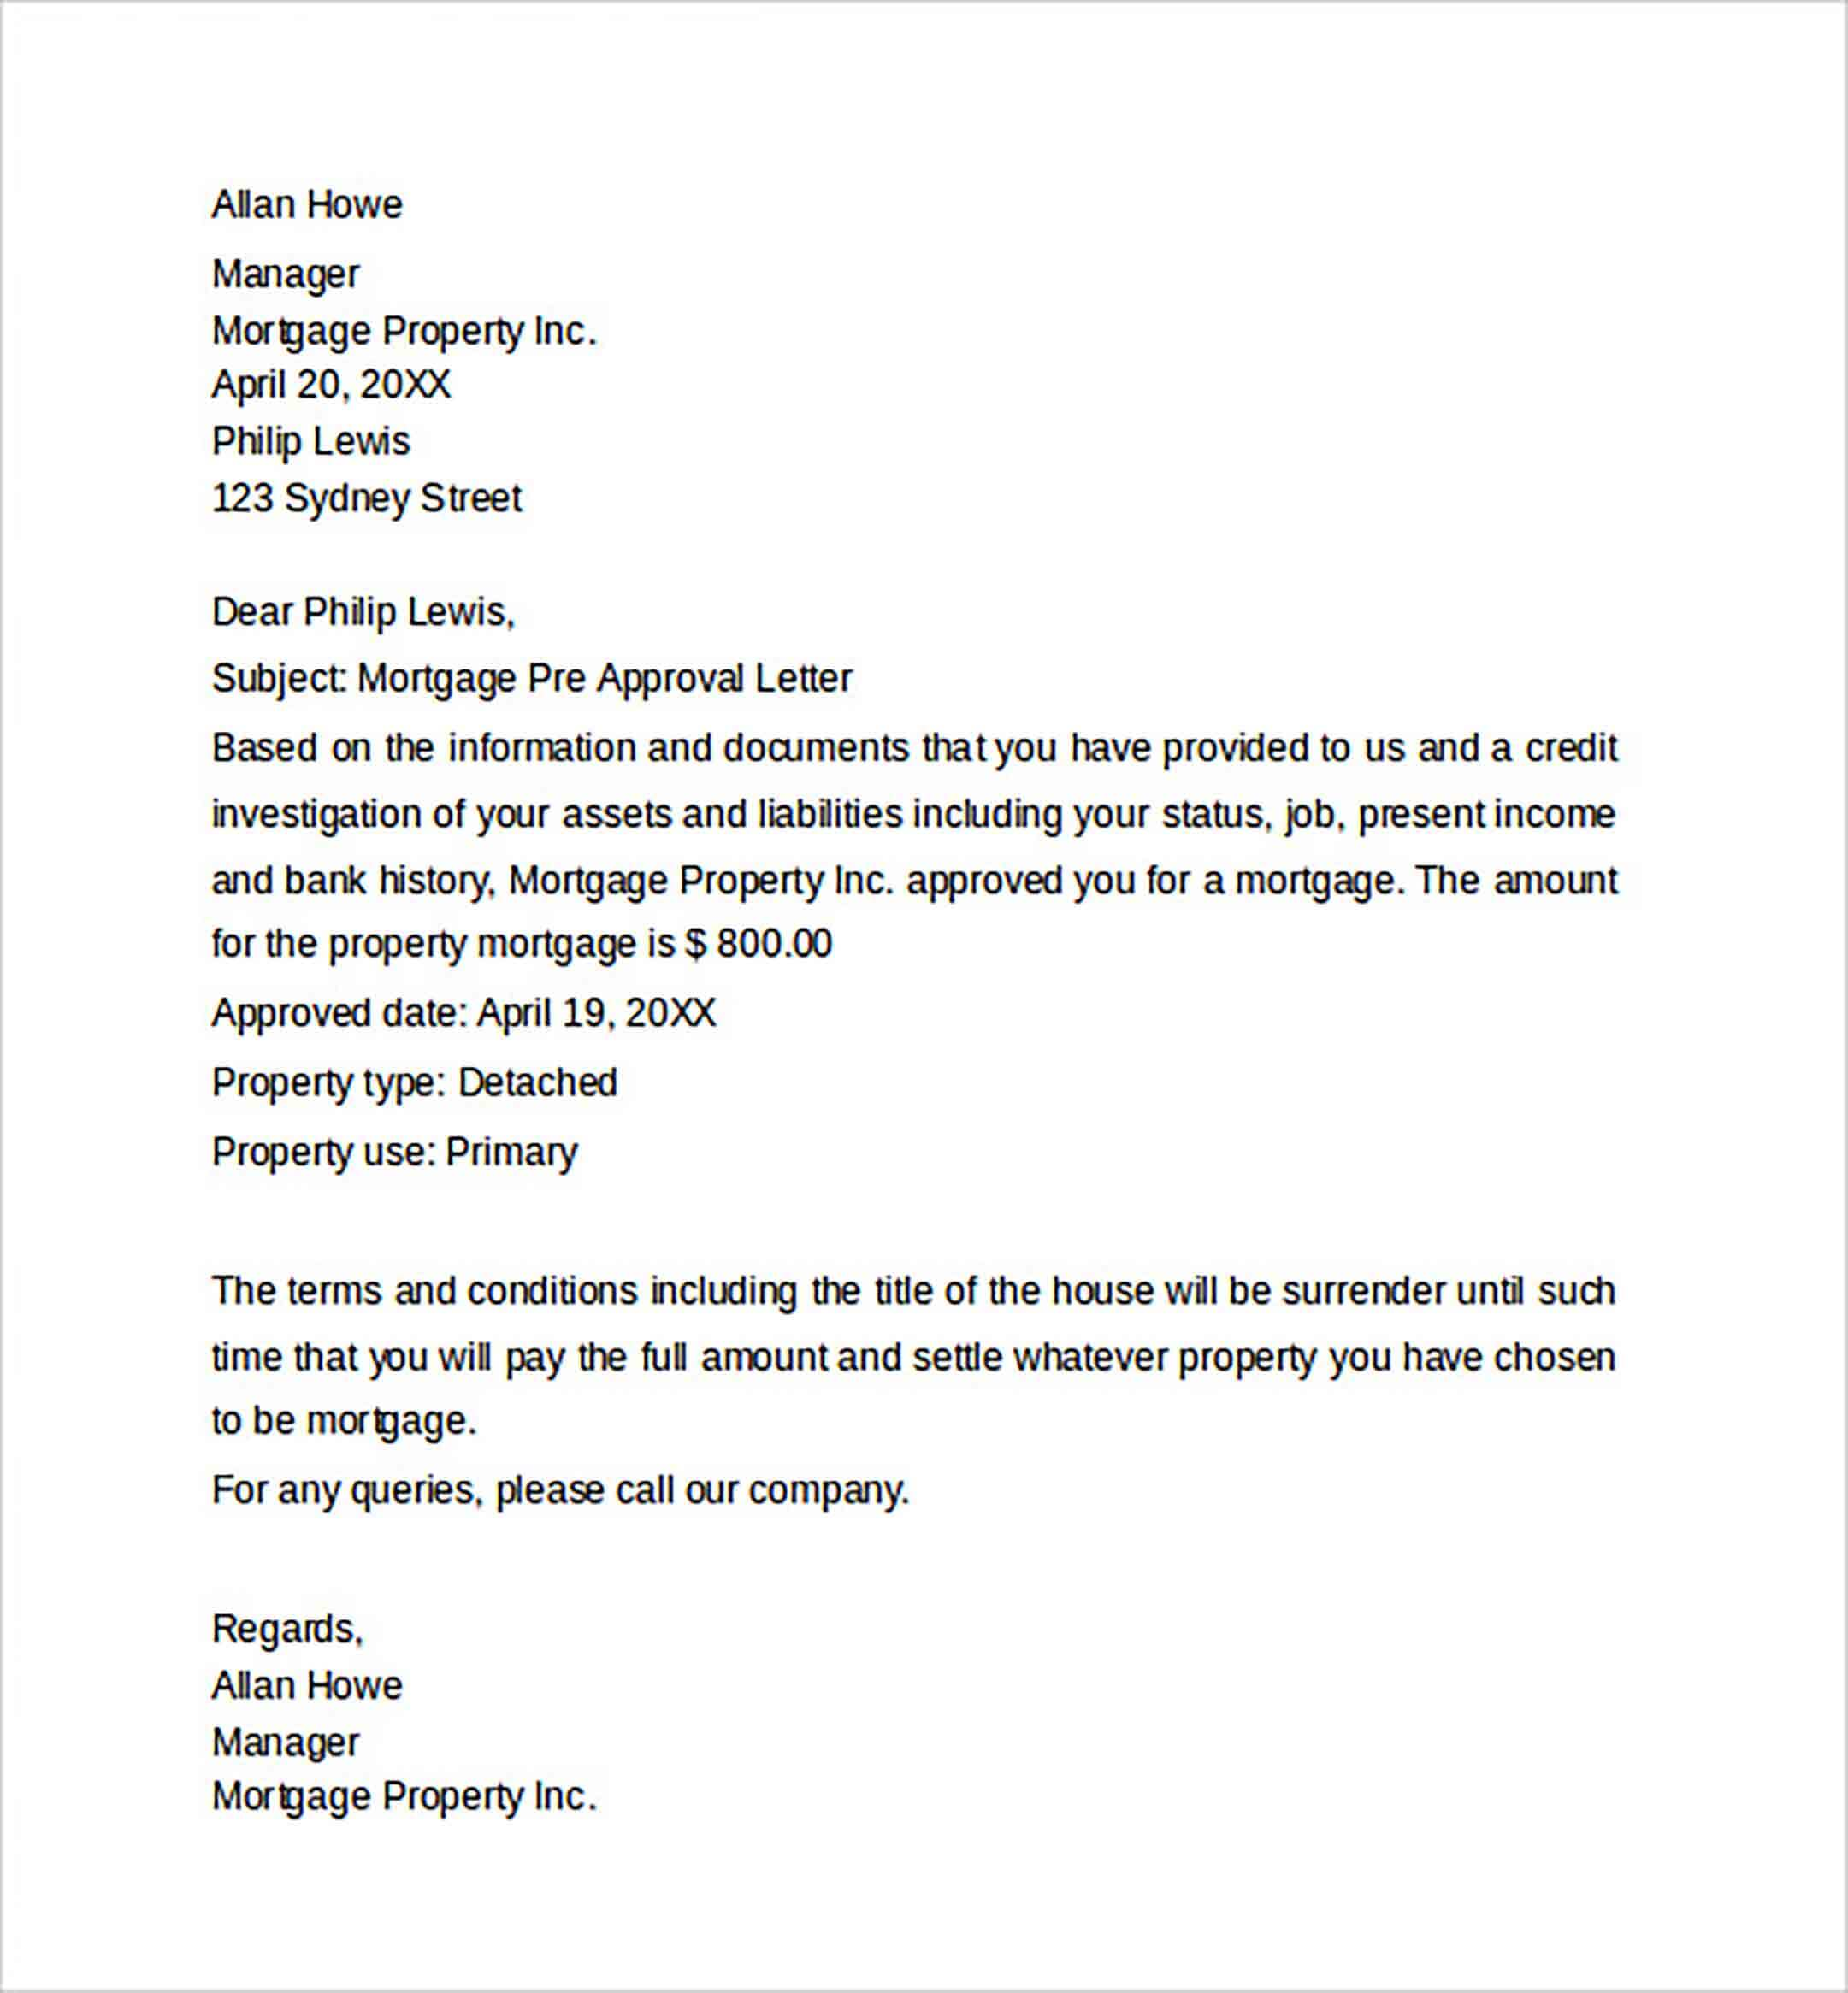 Mortgage Pre Approval Letter